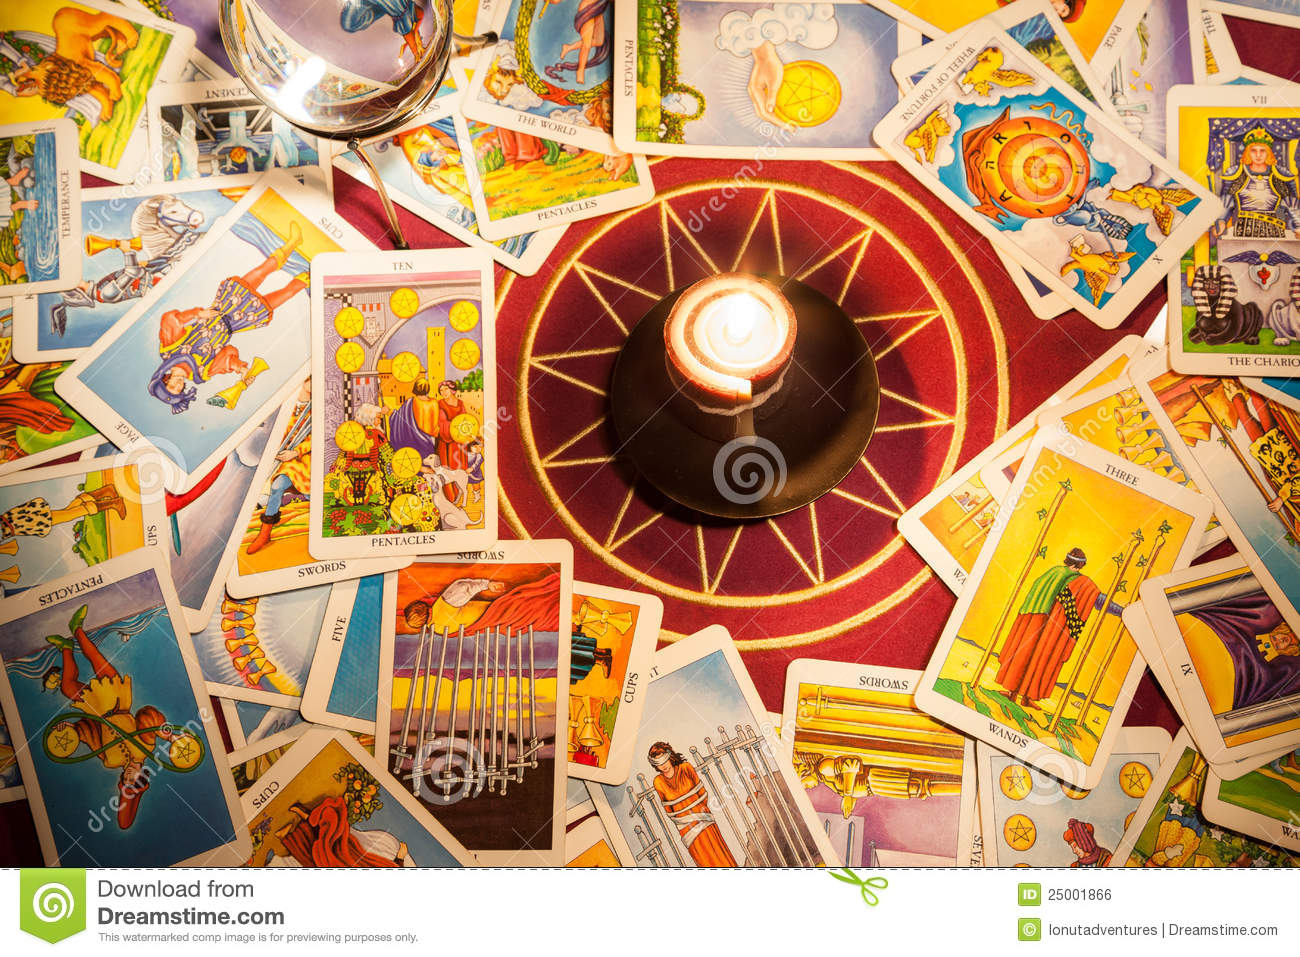 Tarot cards with a candle.